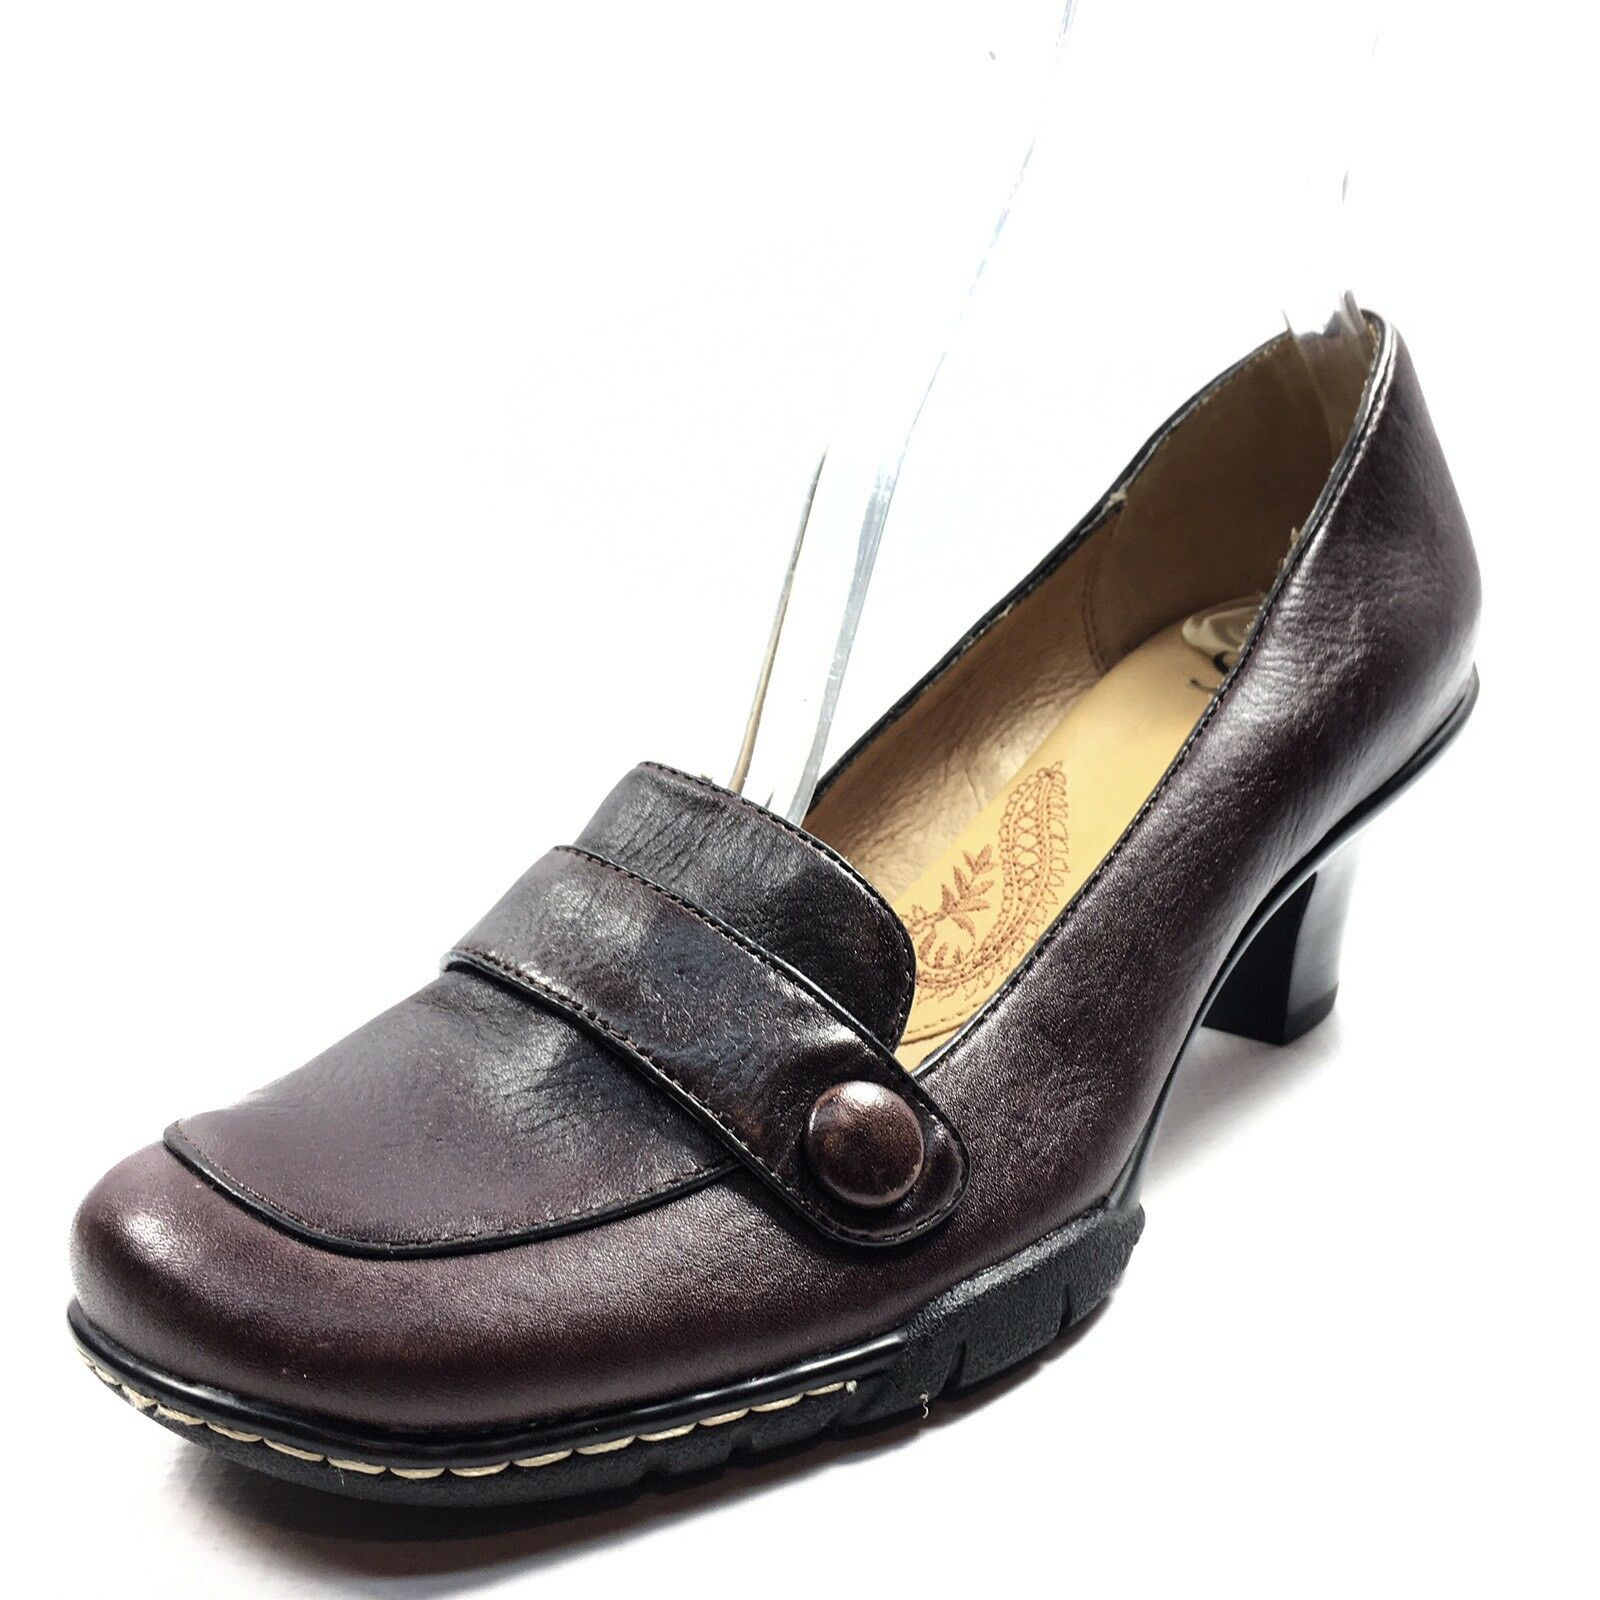 SOFFT Brown Leather Casual Heels Pumps Women's Size 8 M